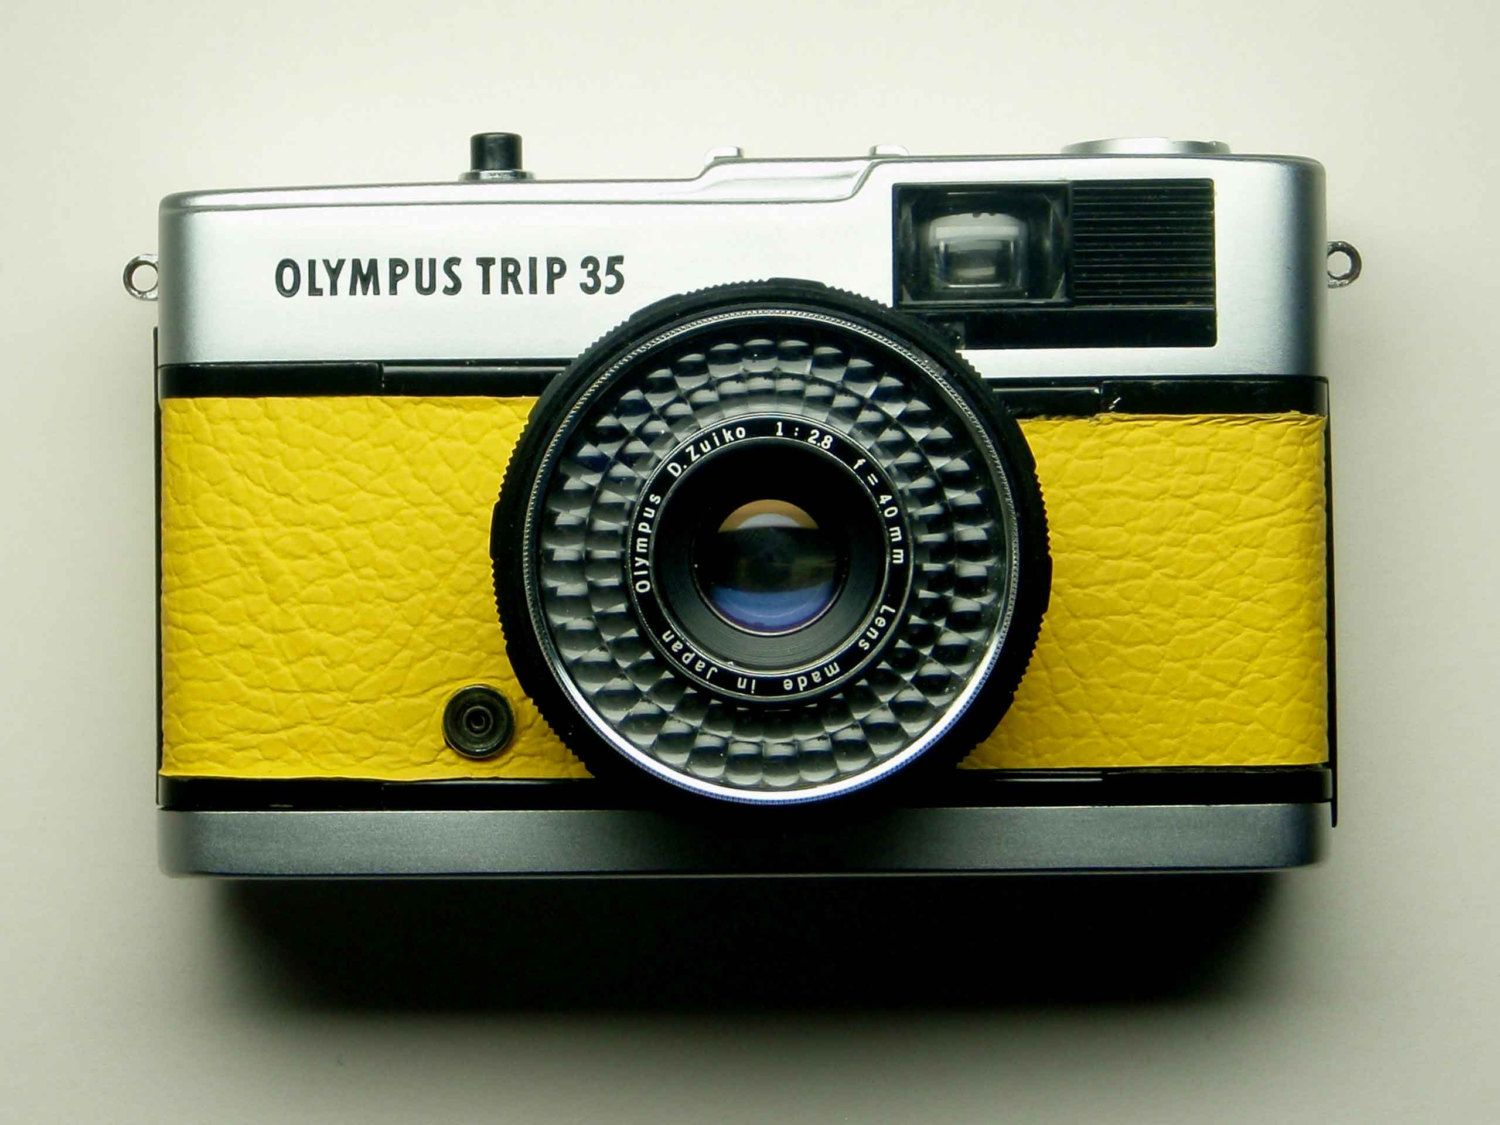 Olympus Trip 35 - refurbished 1970s film camera, yellow ...